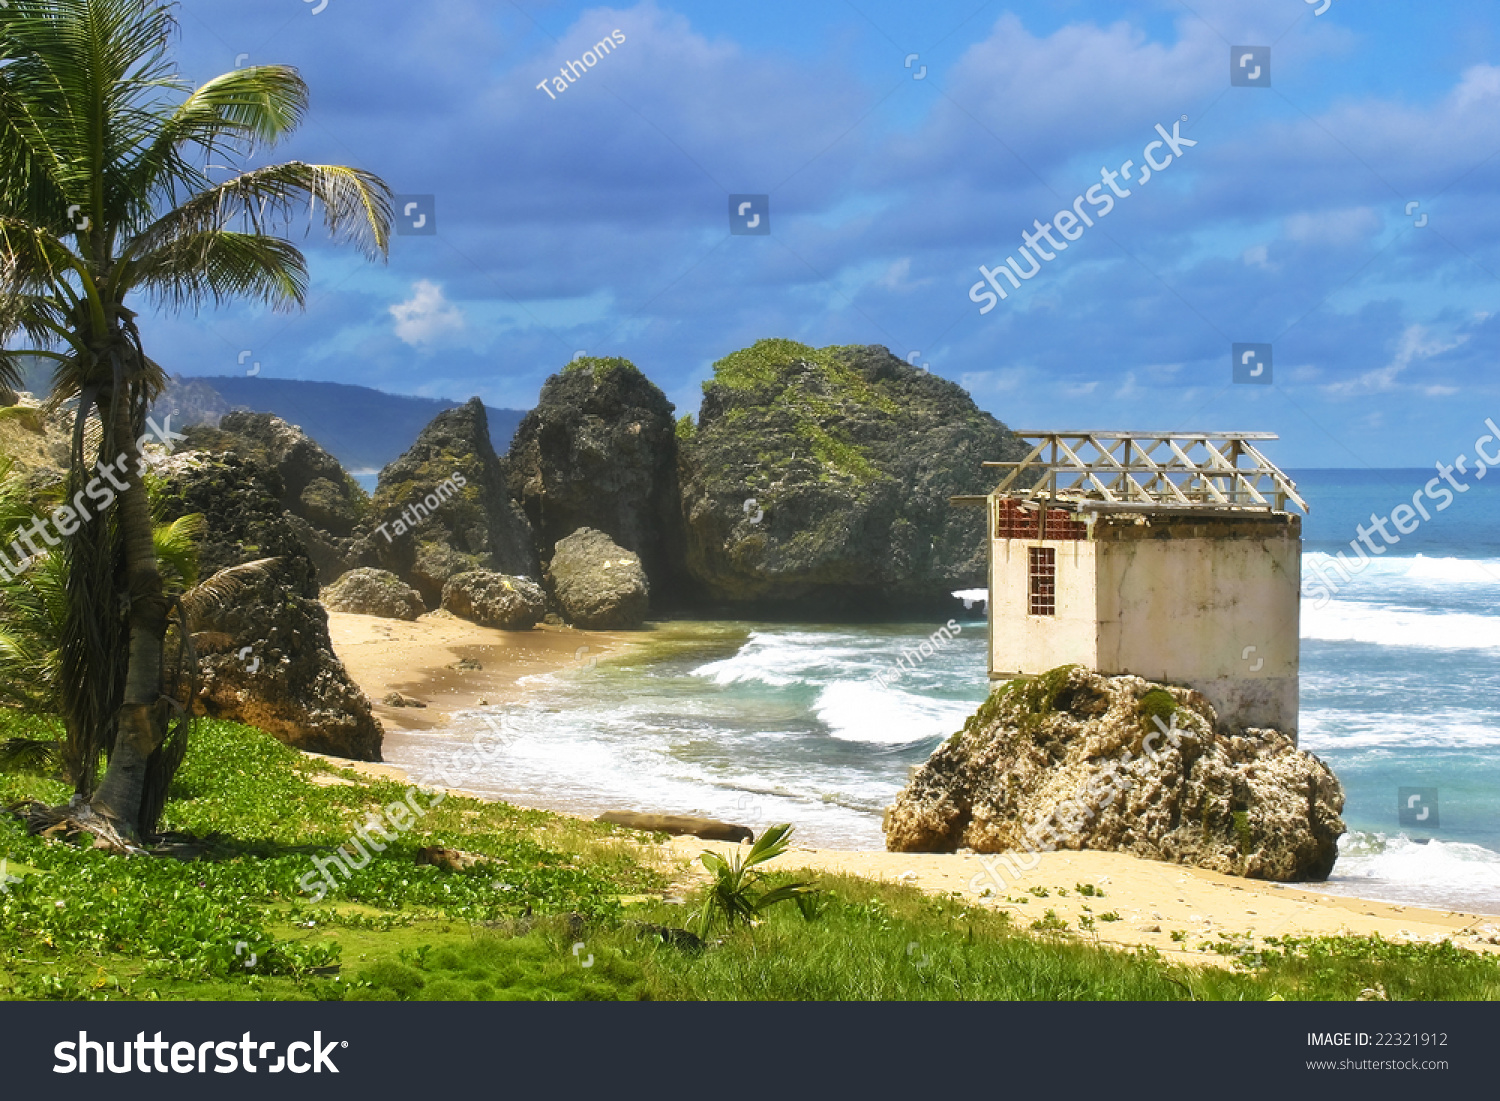 stock-photo-bathsheba-rocks-22321912.jpg